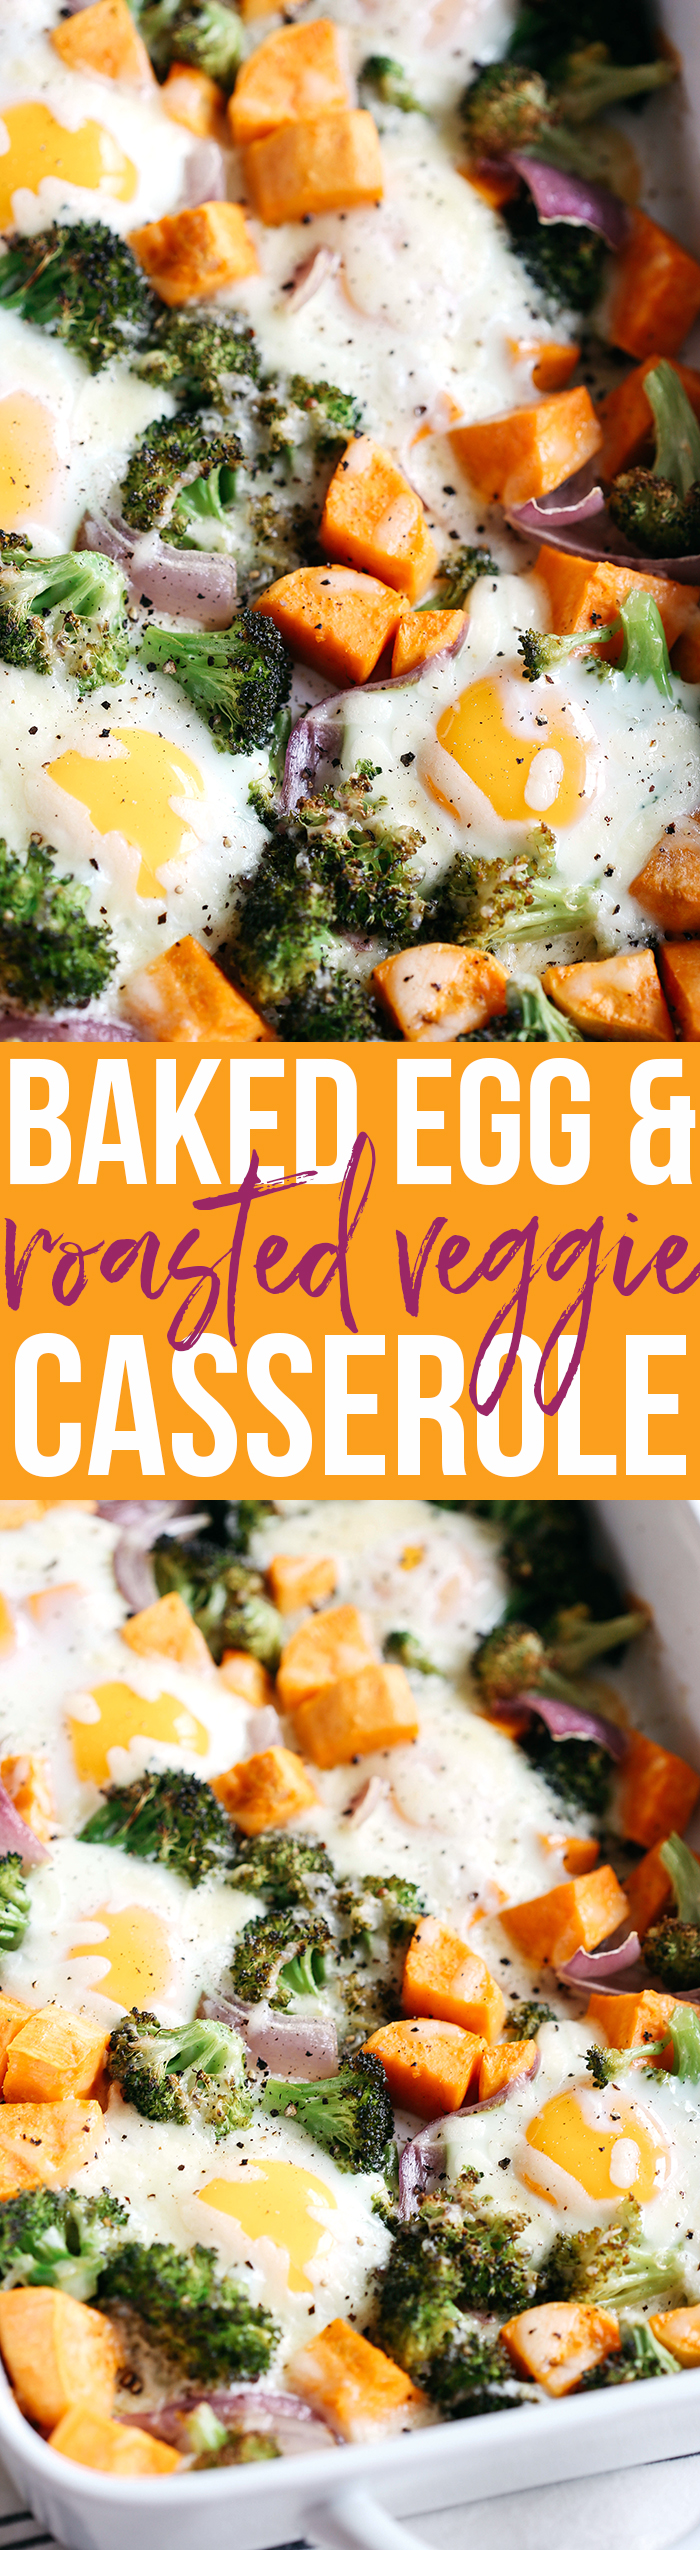 This Baked Egg and Roasted Veggie Casserole is the perfect healthy breakfast that uses up all those leftover veggies in one single dish!